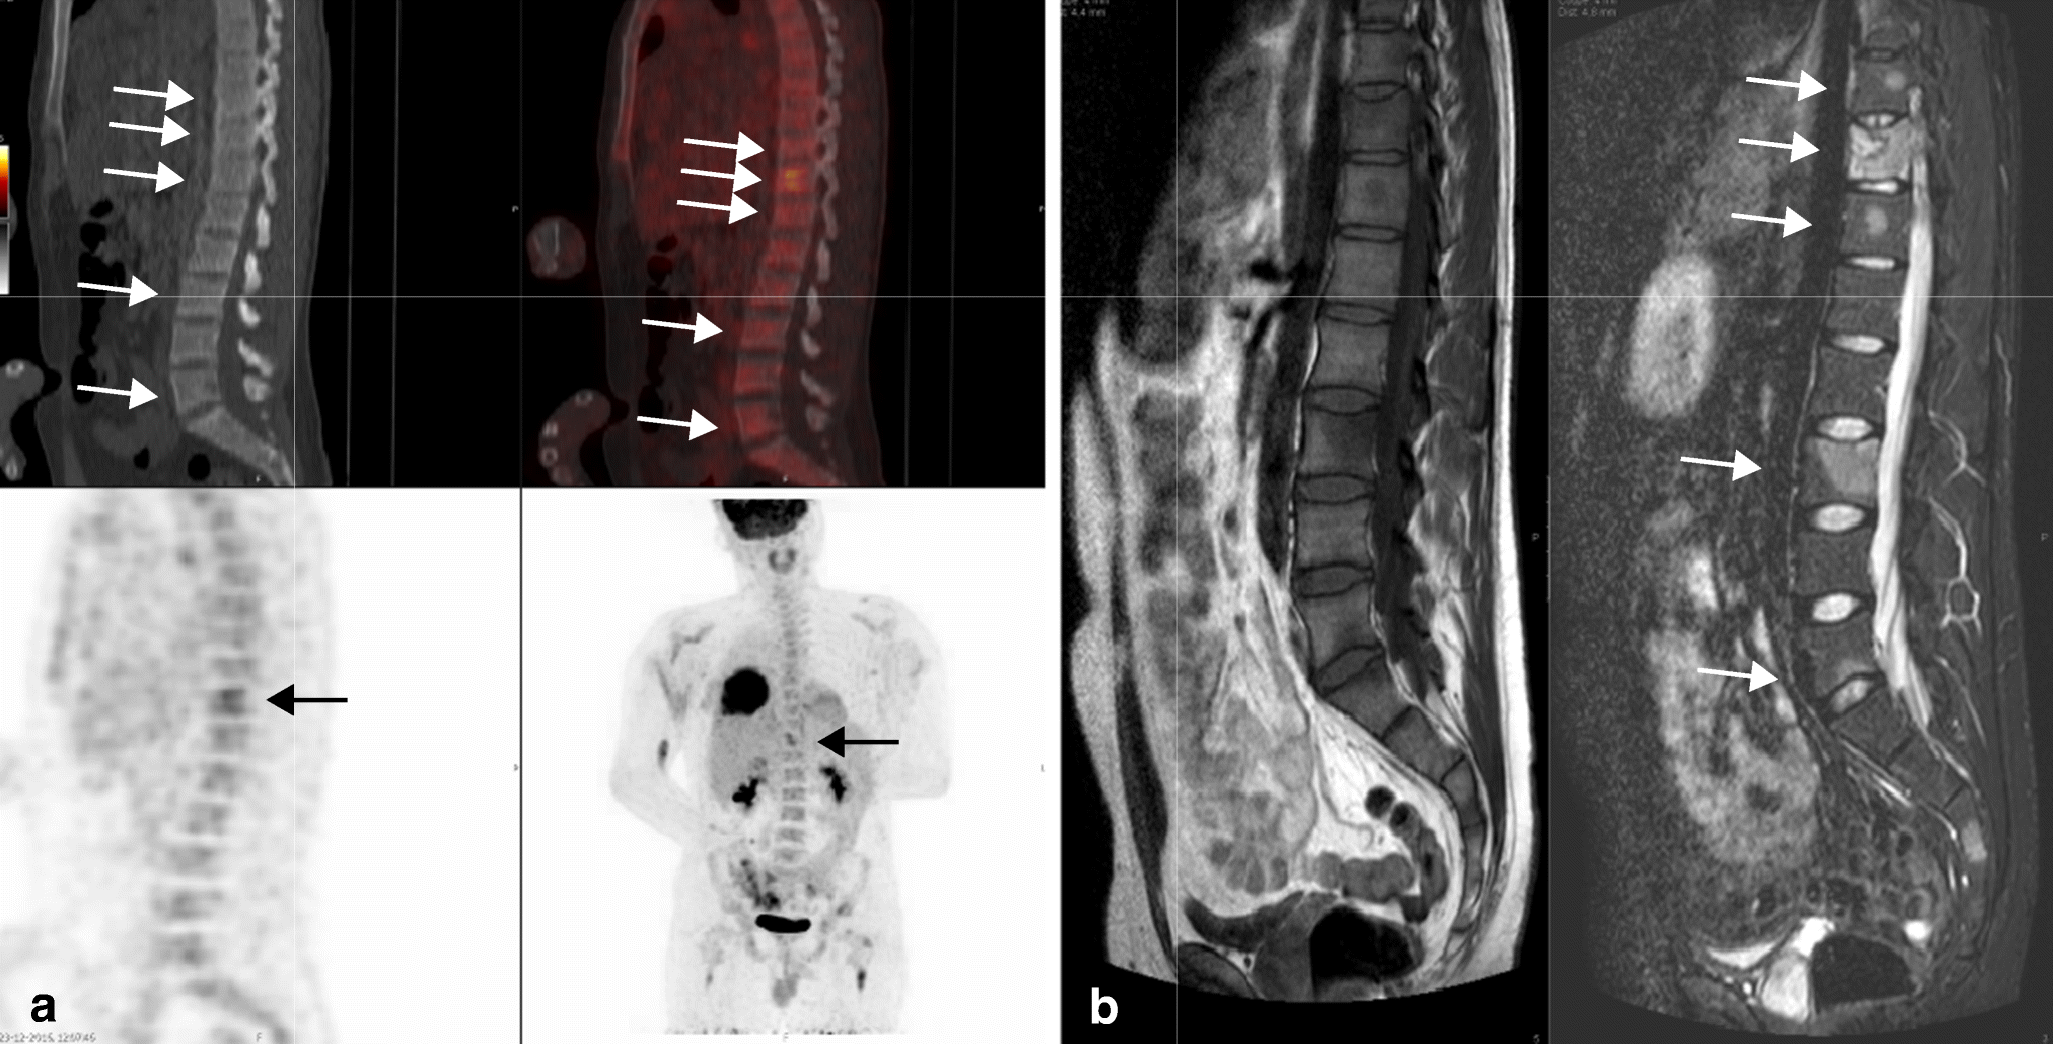 18F-FDG PET-CT versus MRI for detection of skeletal